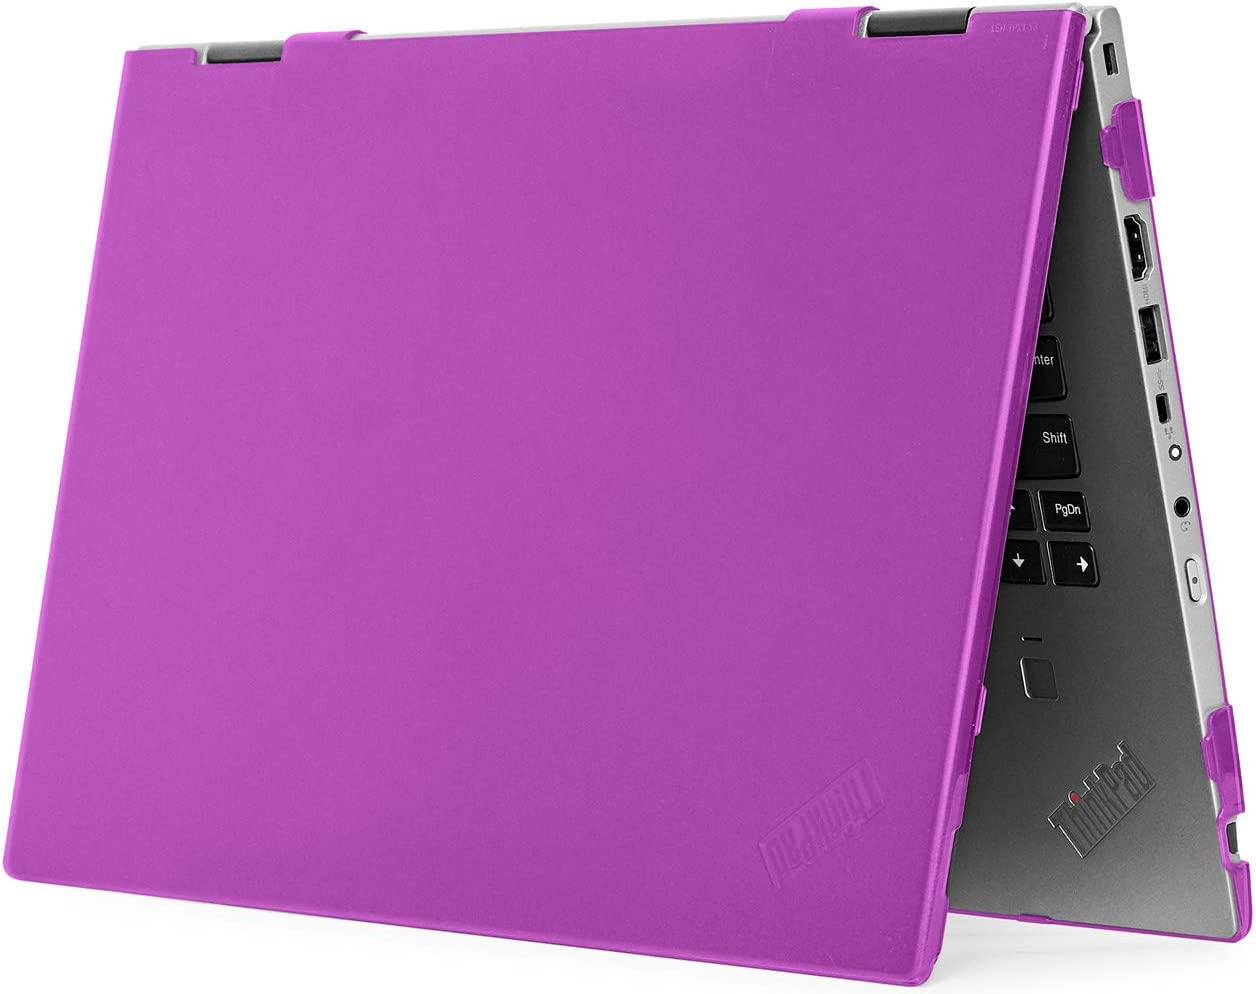 "mCover Hard Shell Case for 14"" Lenovo ThinkPad X1 Yoga (3rd Gen) Laptop Computer (X1-Yoga-3G Purple)"